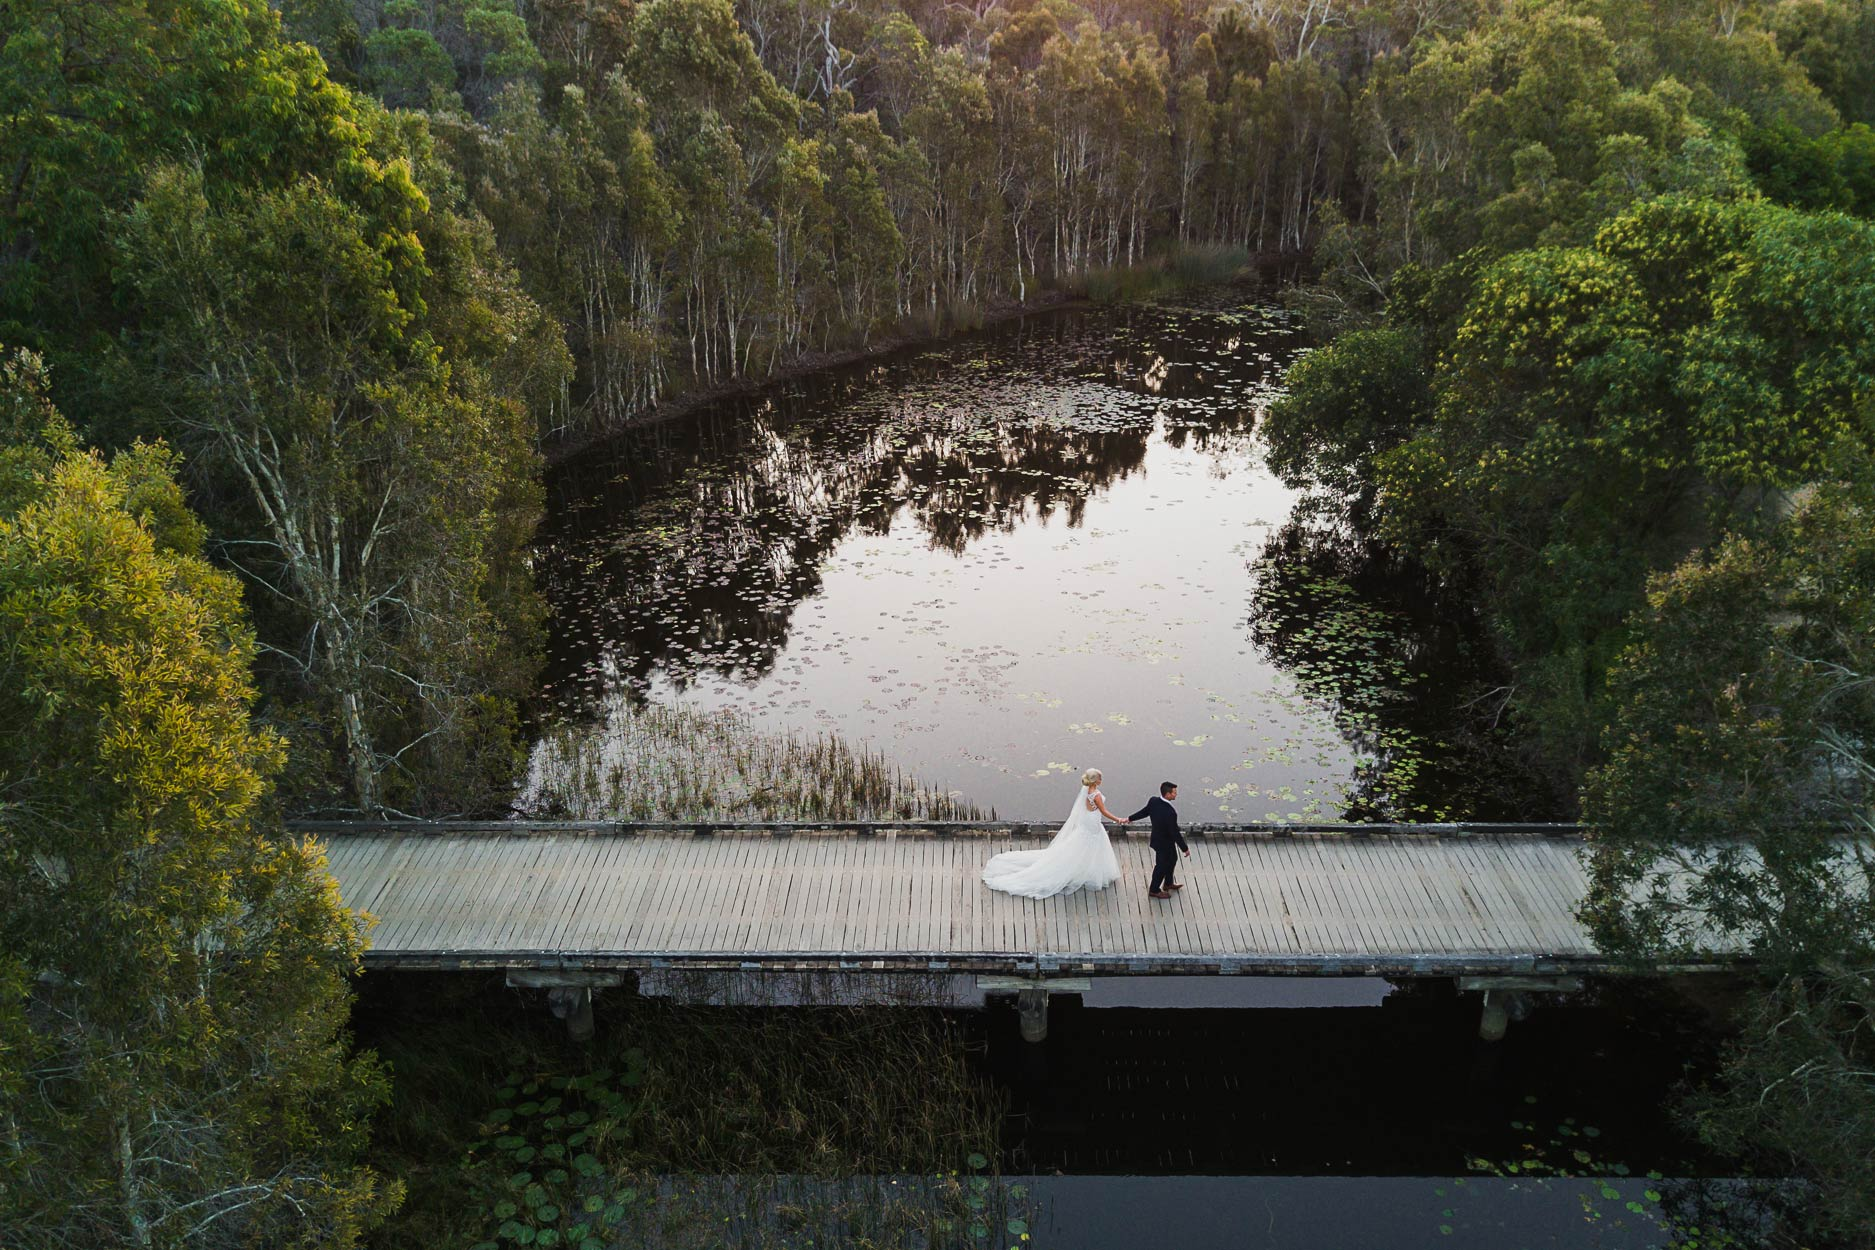 Candid Noosa, Sunshine Coast Drone Wedding - Queensland, Australian Destination Blog Elopement